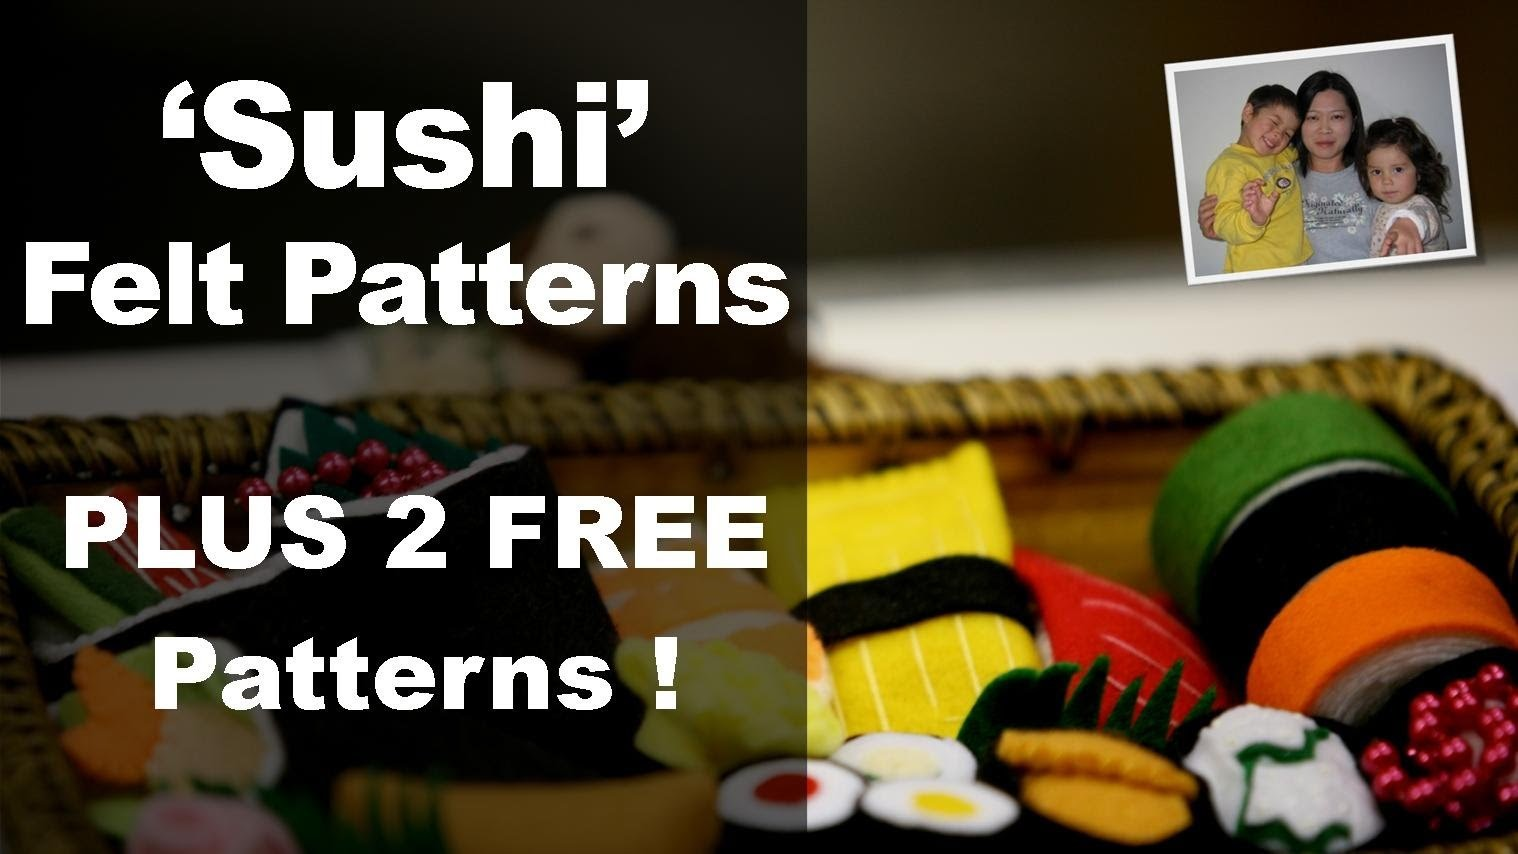 Felt Patterns - Felt Patterns for Sushi from the